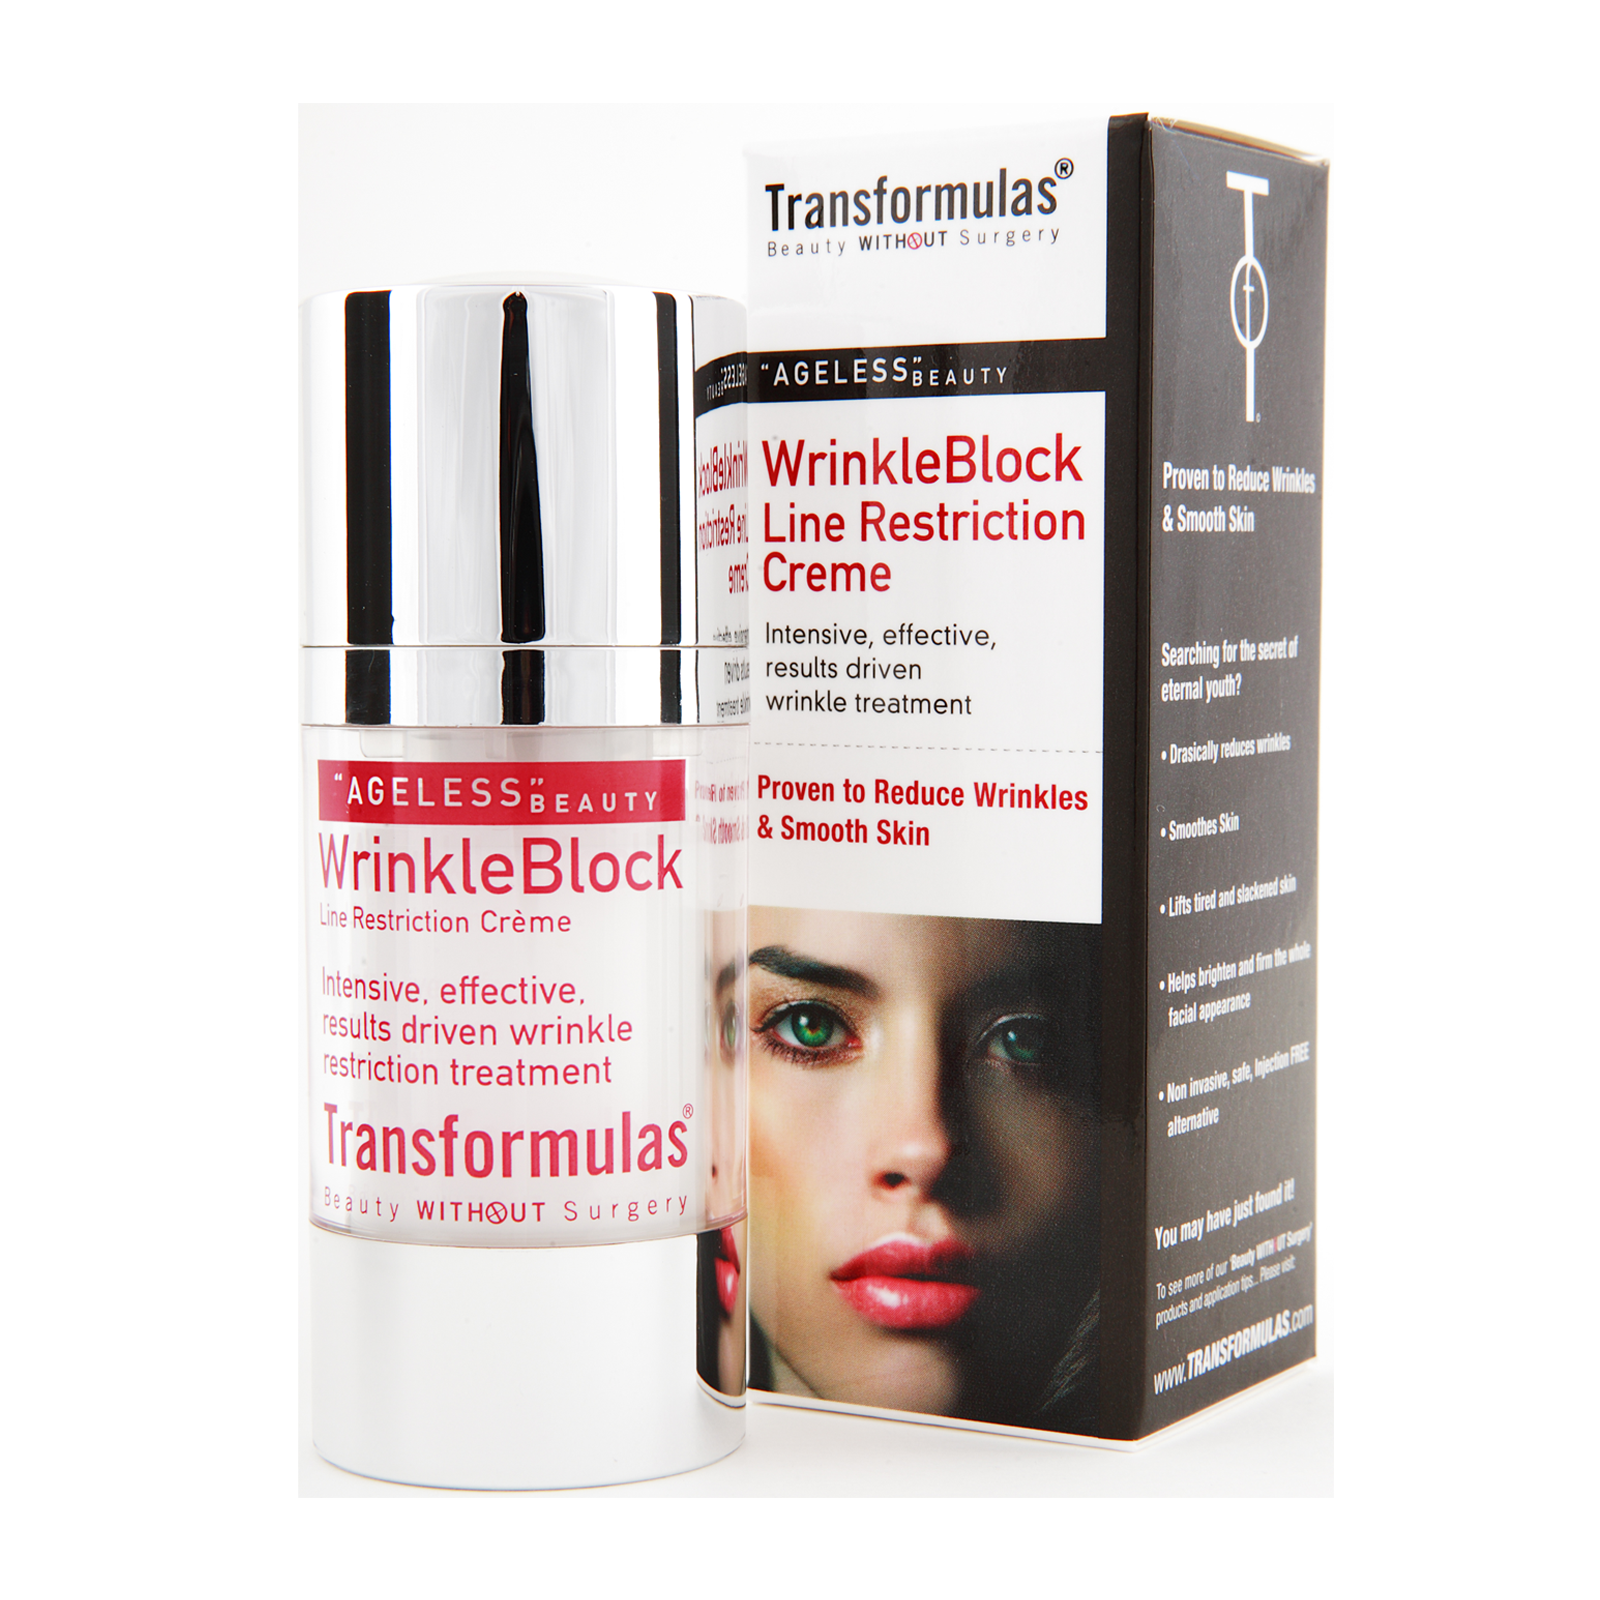 Transformulas Wrinkle Block Line Restriction Creme 15ml Alternate to Syn-ake